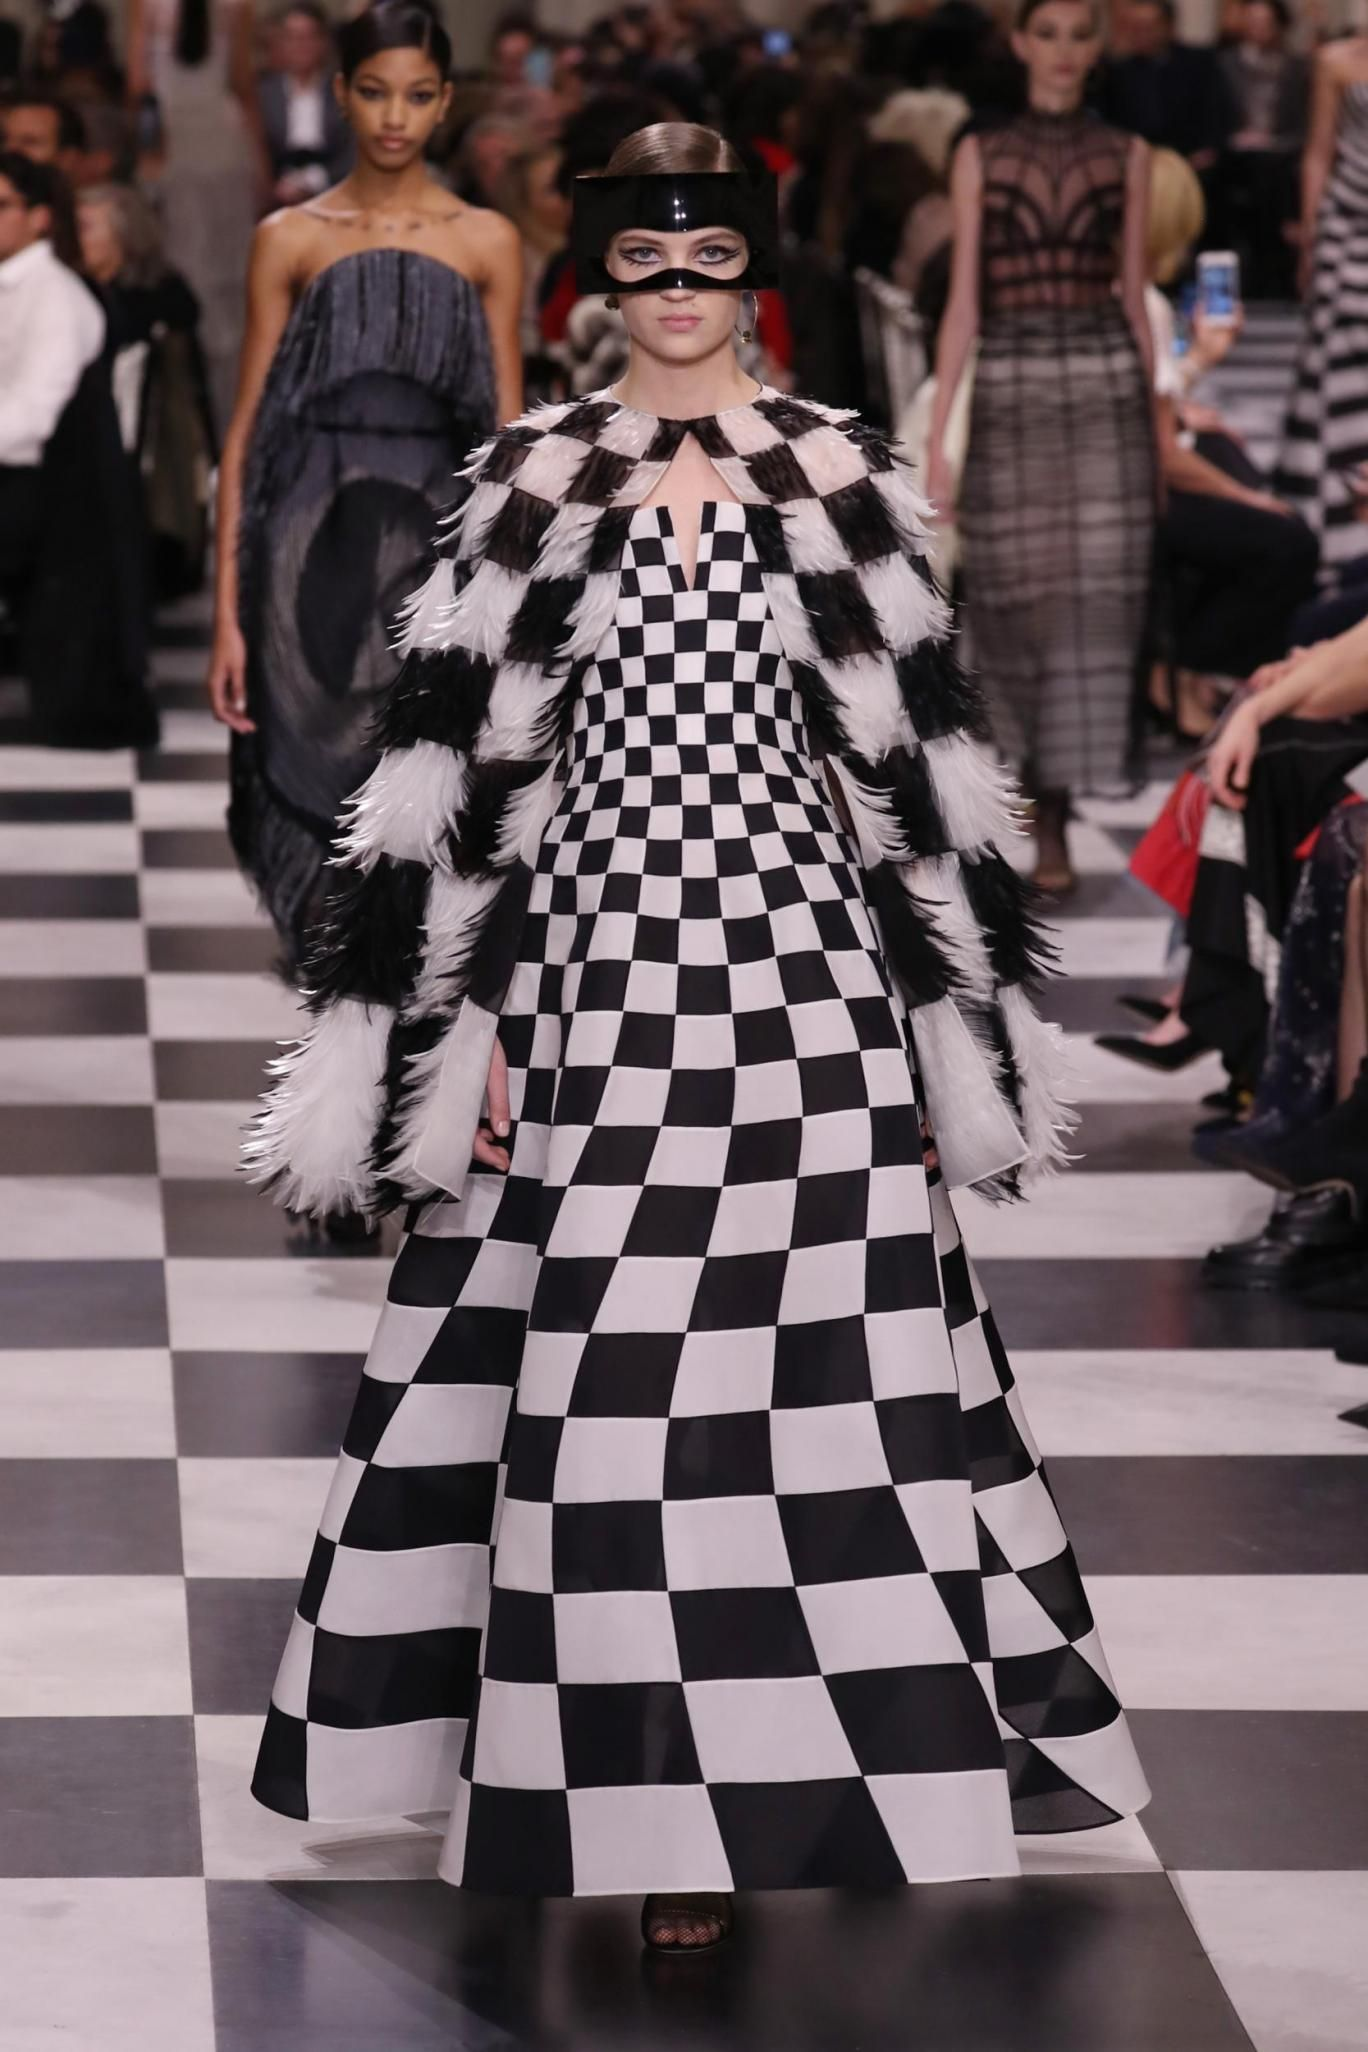 37d856d901 Dior catwalk in Paris today 2018 as Maria Grazia Chiuri unveiled her latest  Dior couture collection as an ode to Surrealism. Chess dress.